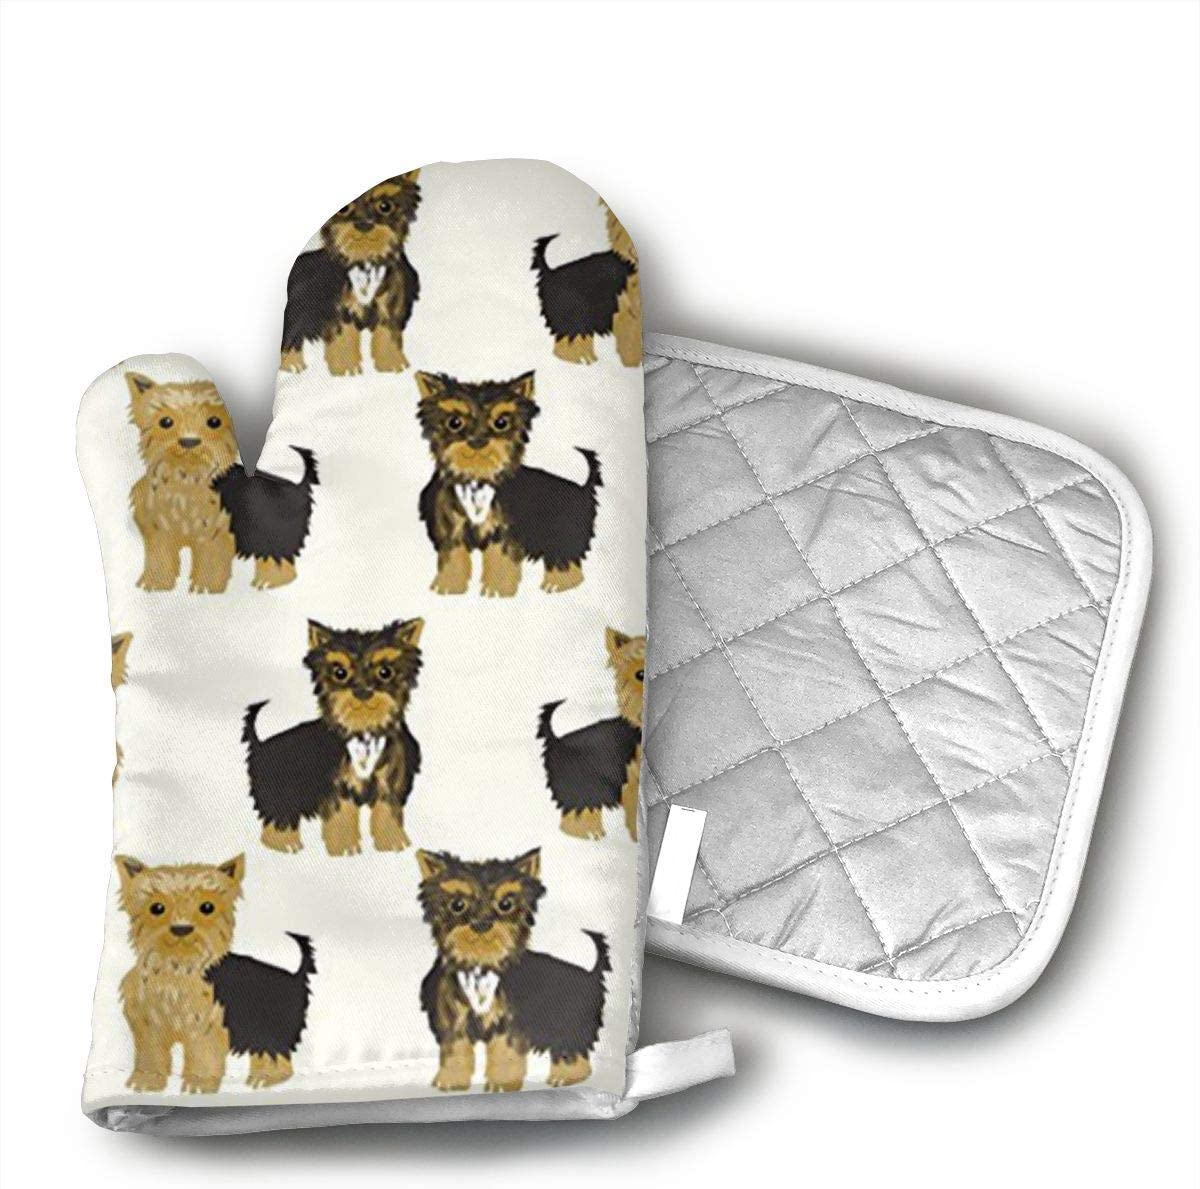 Sjiwqoj8 Yorkshire Terrier Cute Yorkie Dog Pet Kitchen Oven Mitts,Oven Mitts and Pot Holders,Heat Resistant with Quilted Cotton Lining,Cooking,Baking,Grilling,Barbecue